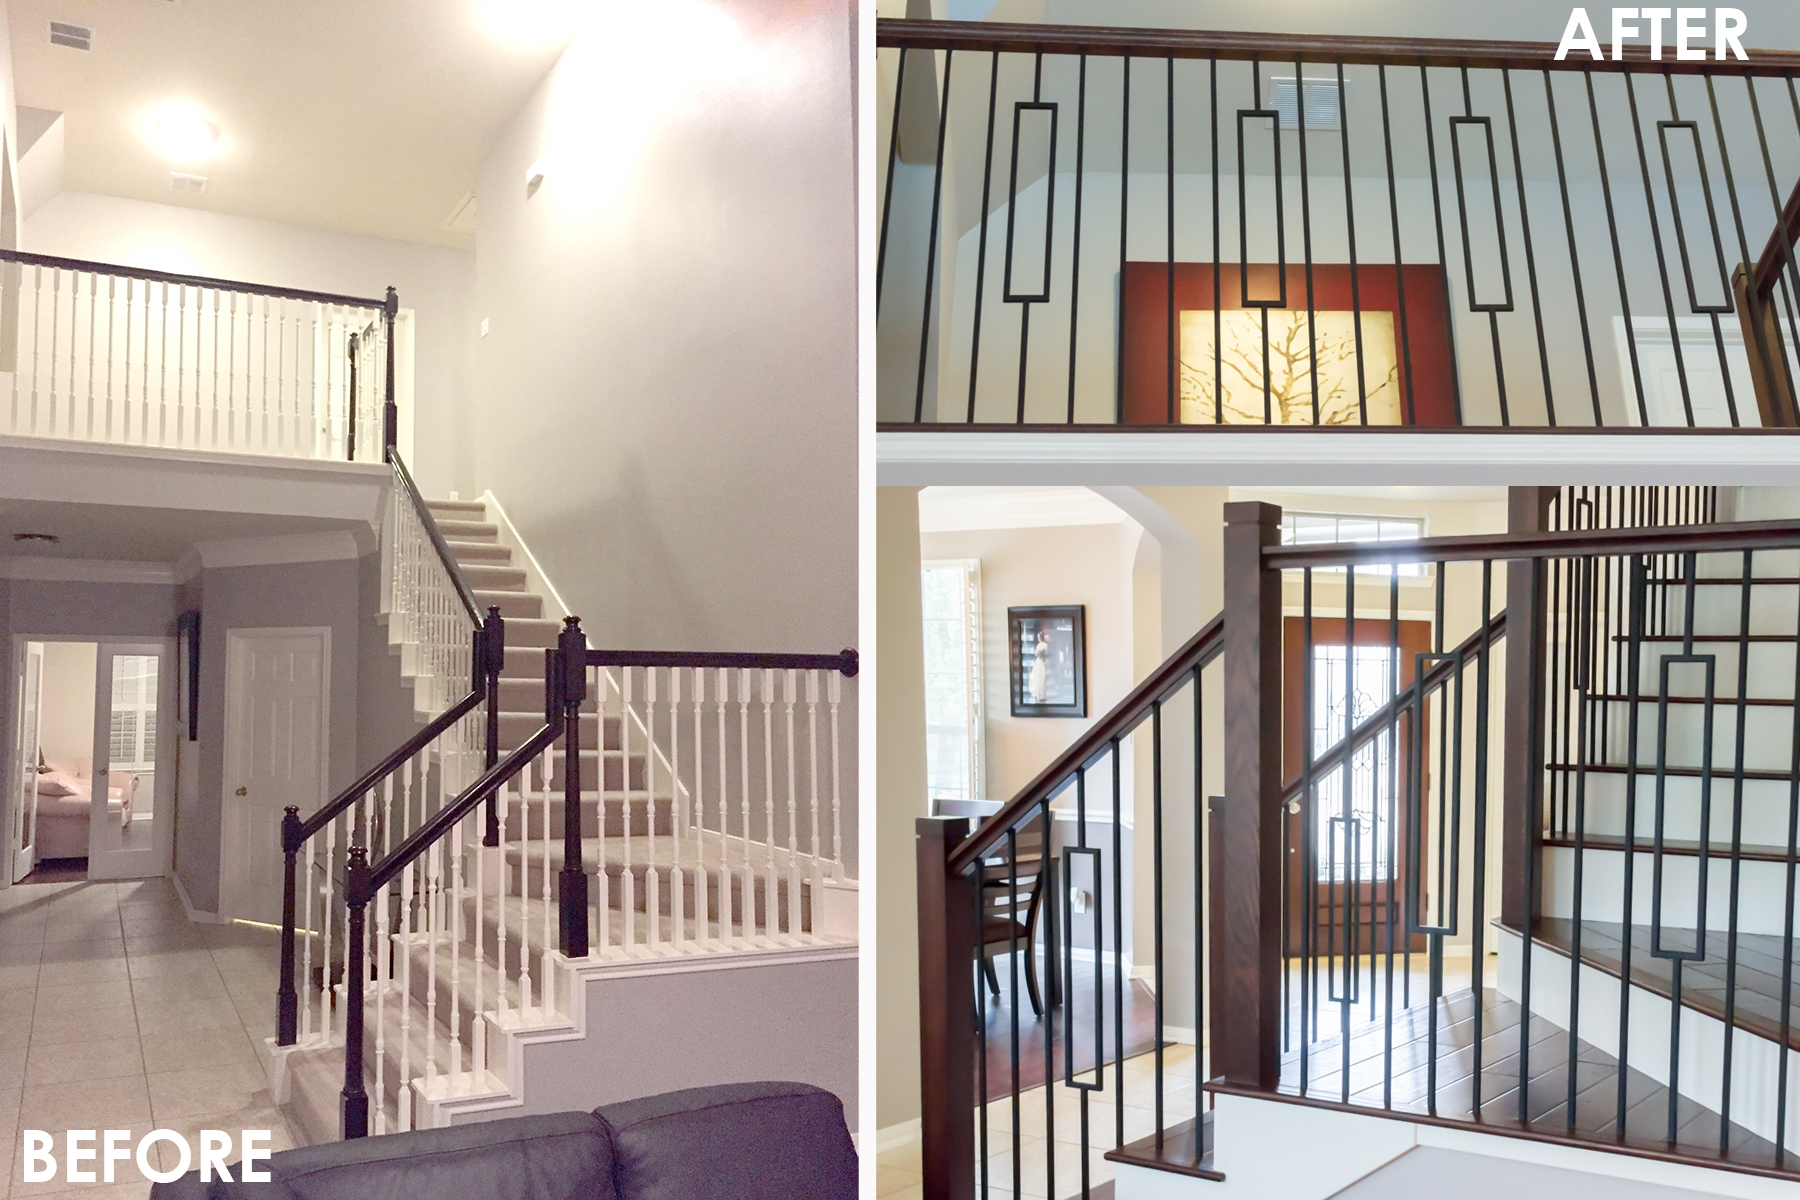 Before After Aalto Remodel2 – House Of Forgings Stair And | House Of Forgings Aalto | Stair Parts | Aalto Modern | Aalto Collection | Wrought Iron Baluster | Handrail